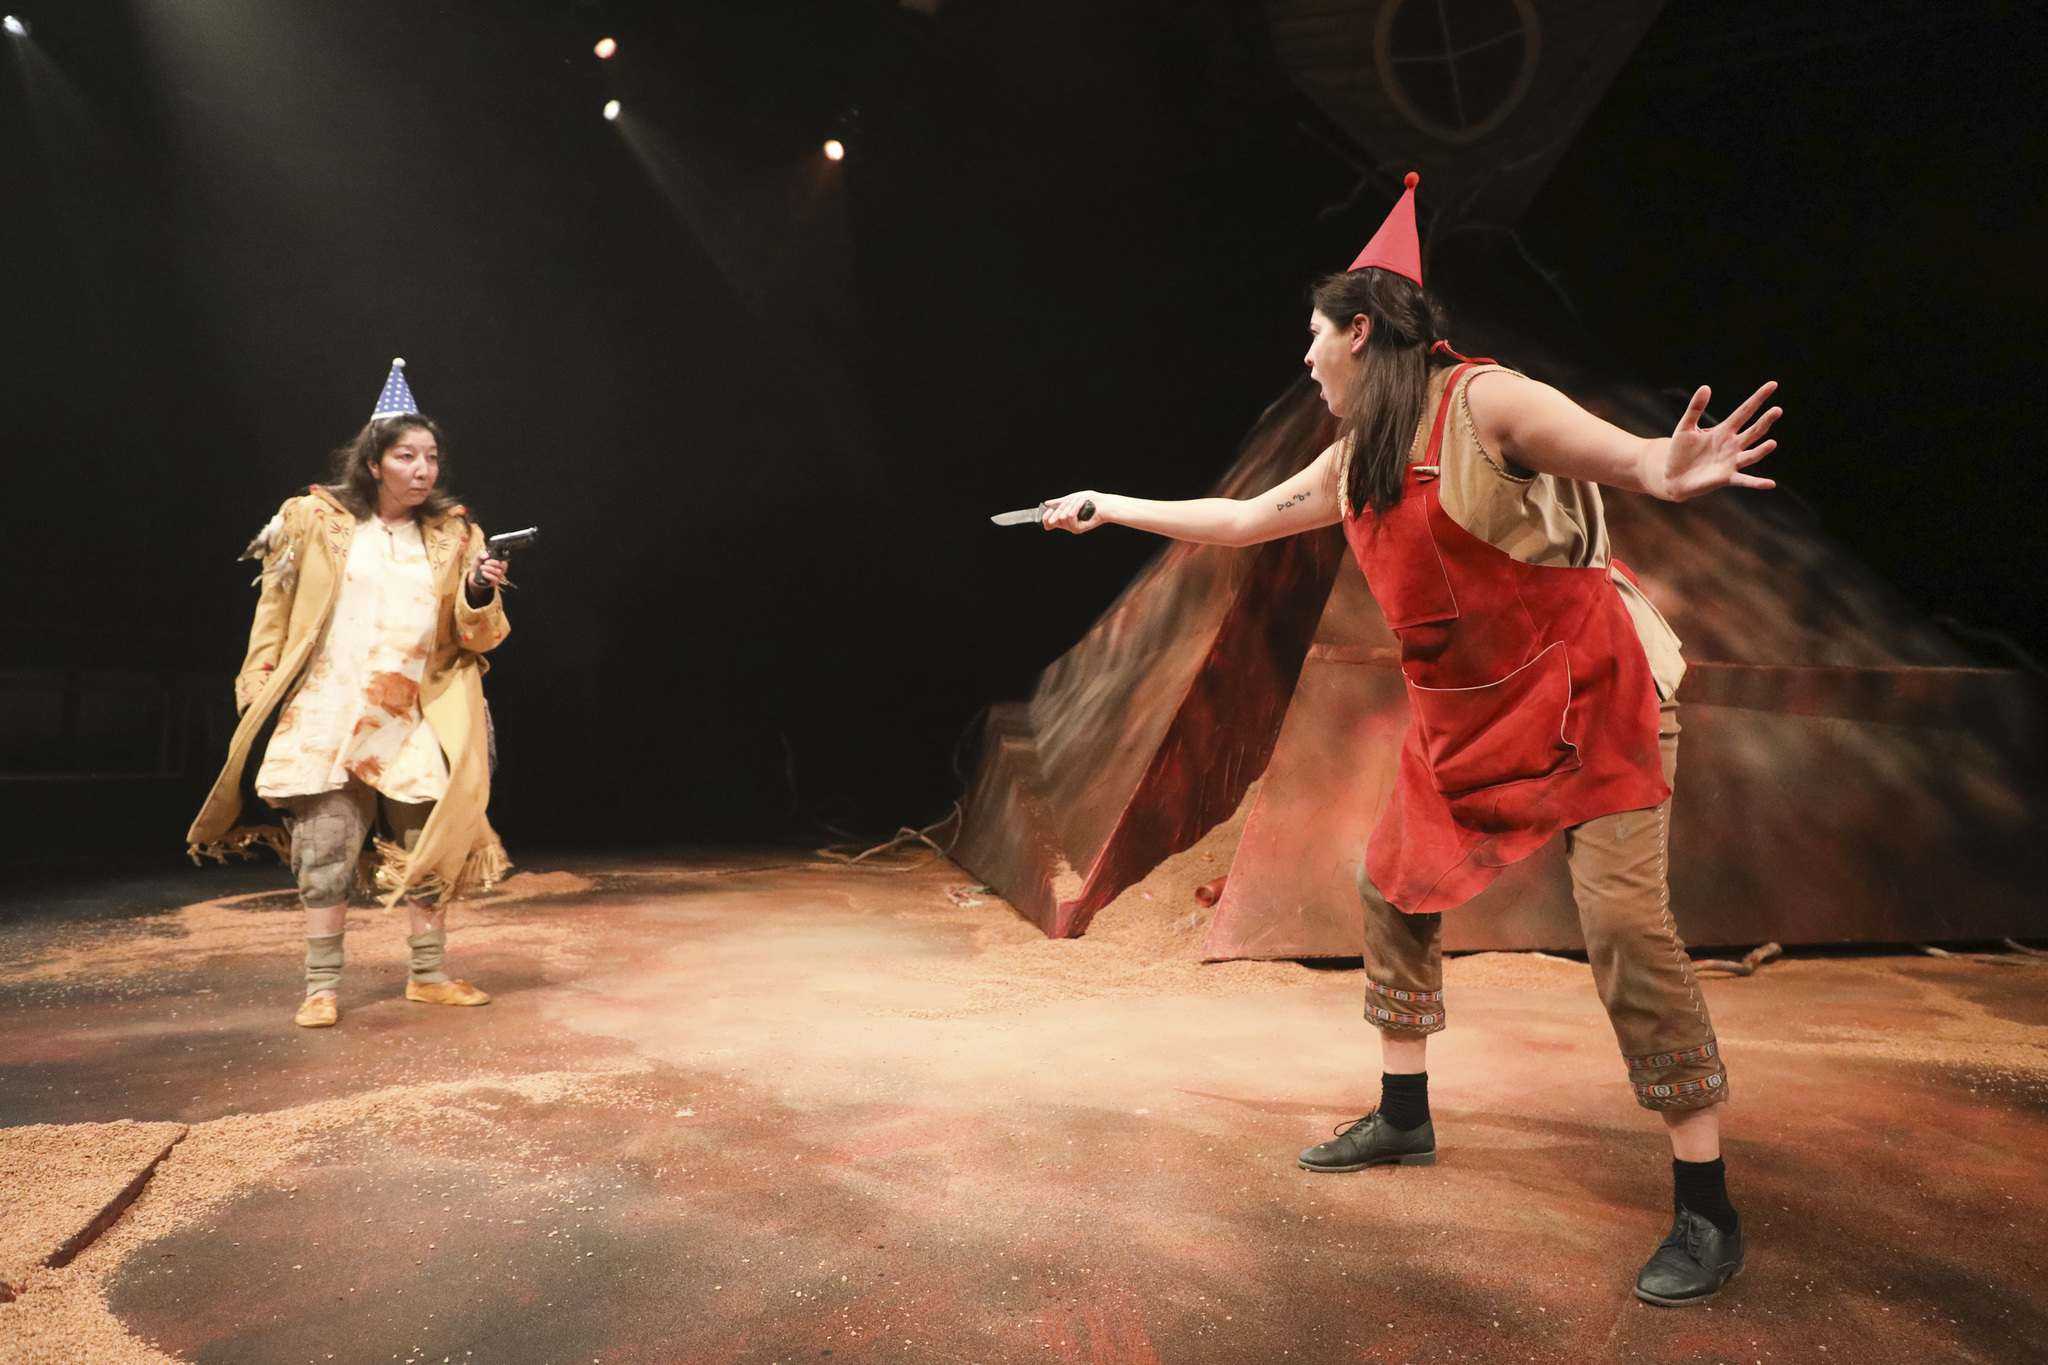 Agatu (Tracey Nepinak, left) and Head Full of Lice (Kathleen MacLean) have to figure out the world they live in. (Leif Norman)